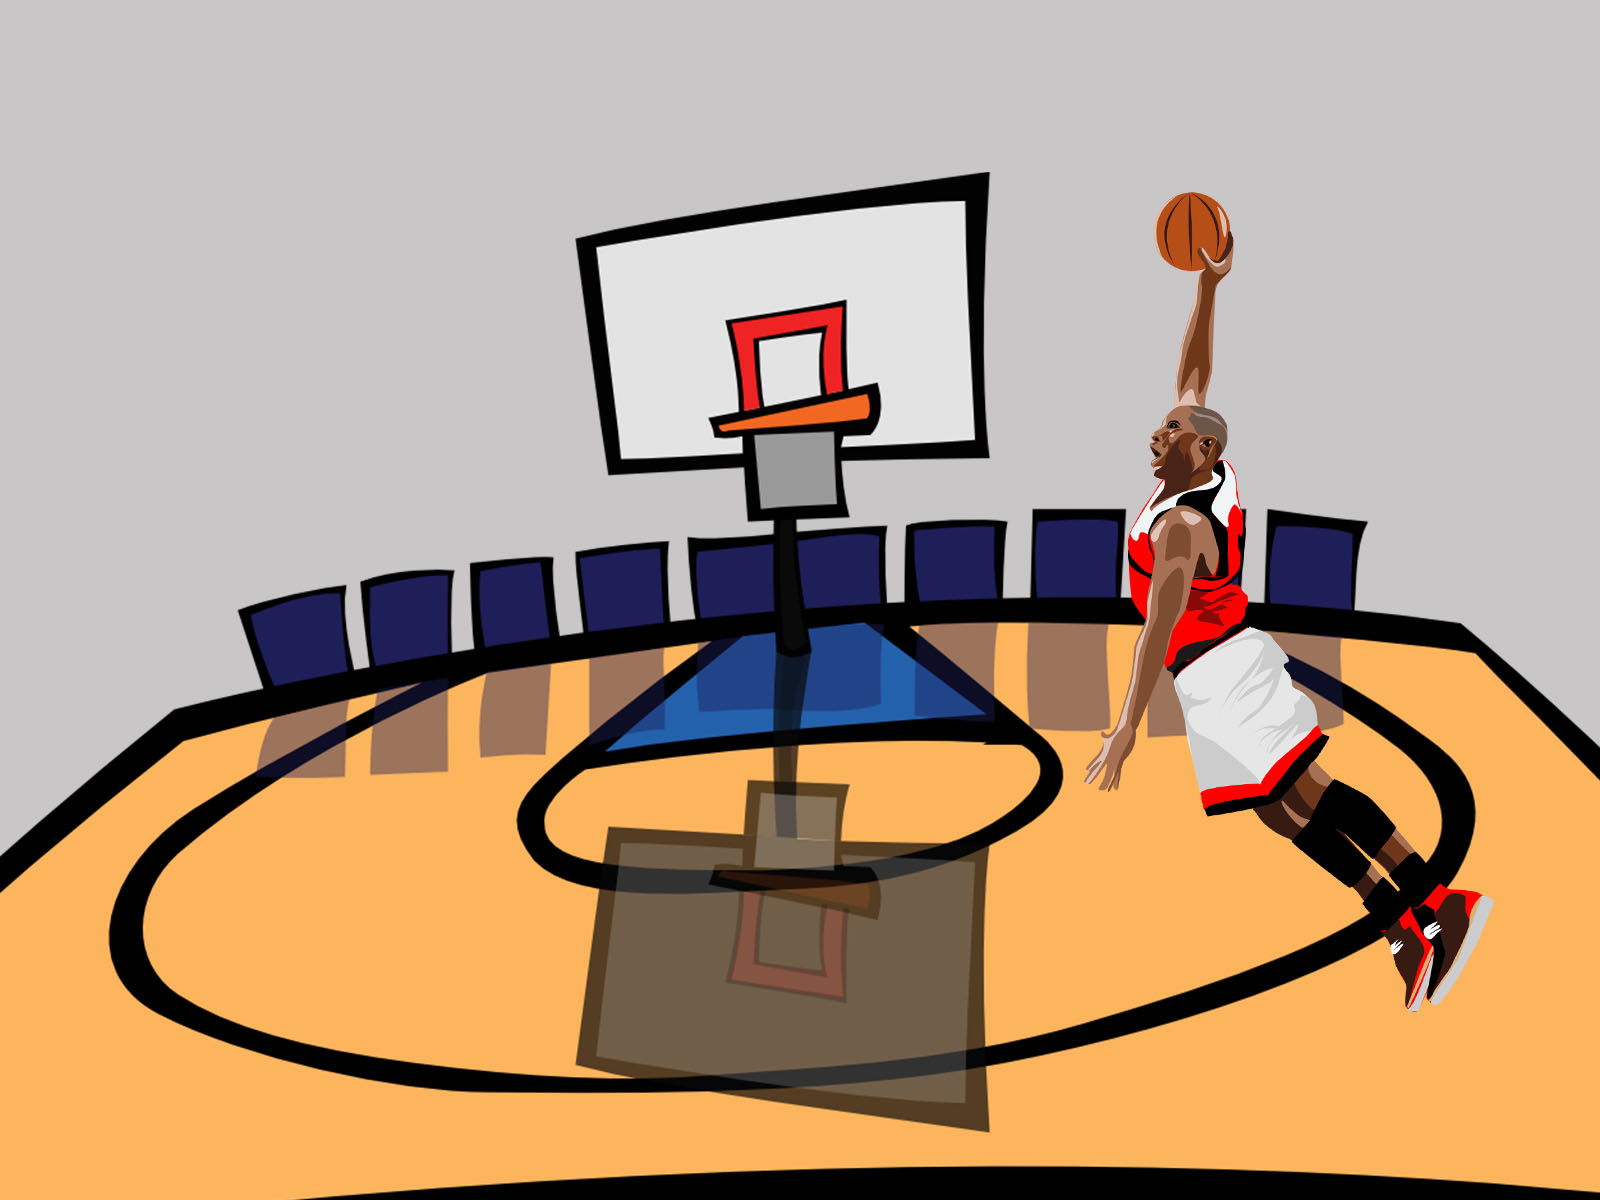 Basketball Game PPT Themes